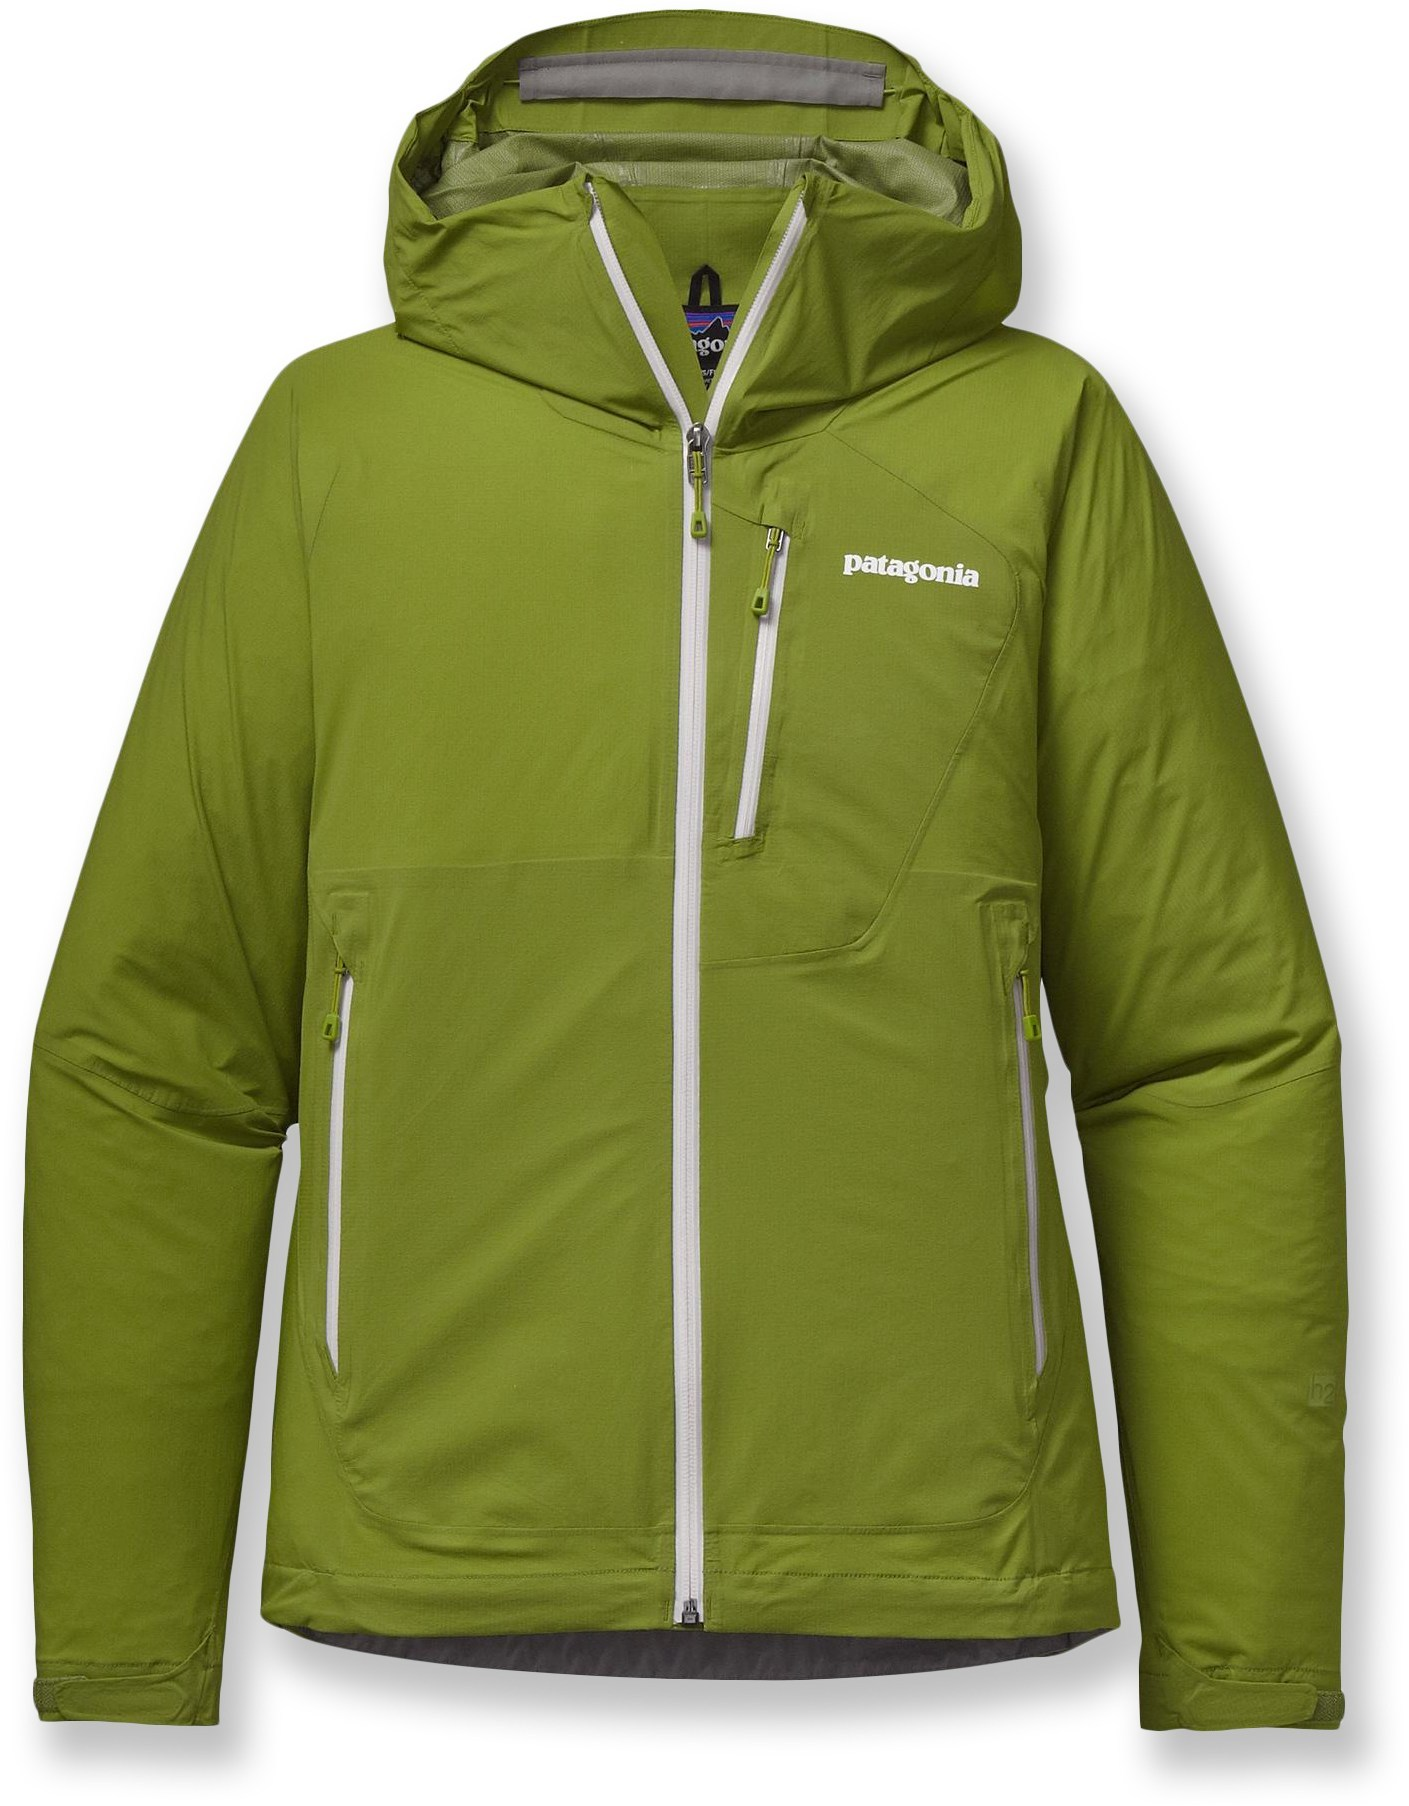 product offerings patagonia Offering multisport versatility, the women's patagonia r1 pullover features a minimalist design and light, breathable fleece with outstanding stretch, durability and odor control.